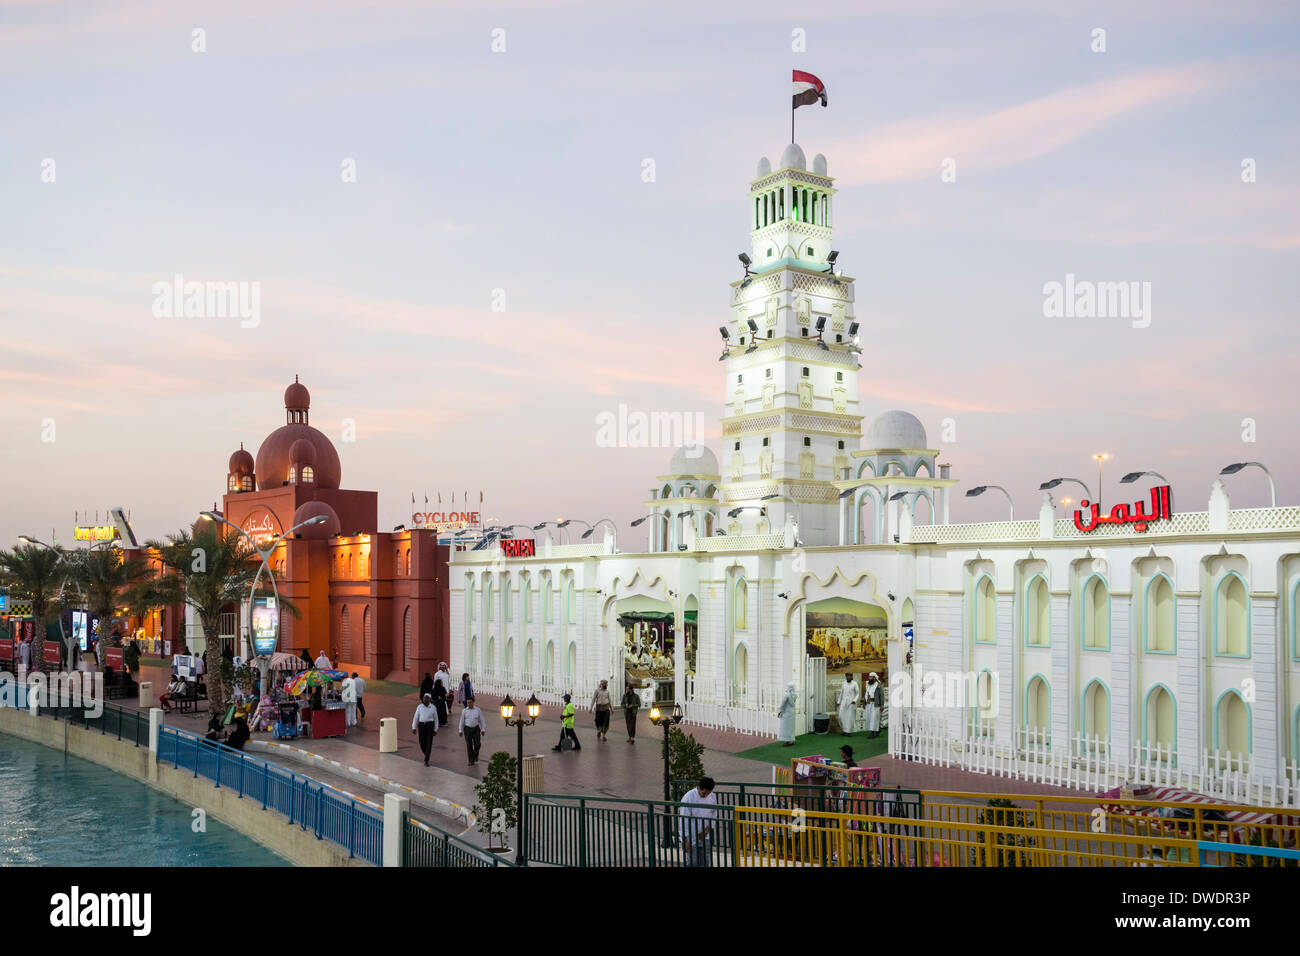 Yemen and Pakistan Pavilions at  Global Village tourist cultural attraction in Dubai United Arab Emirates Stock Photo